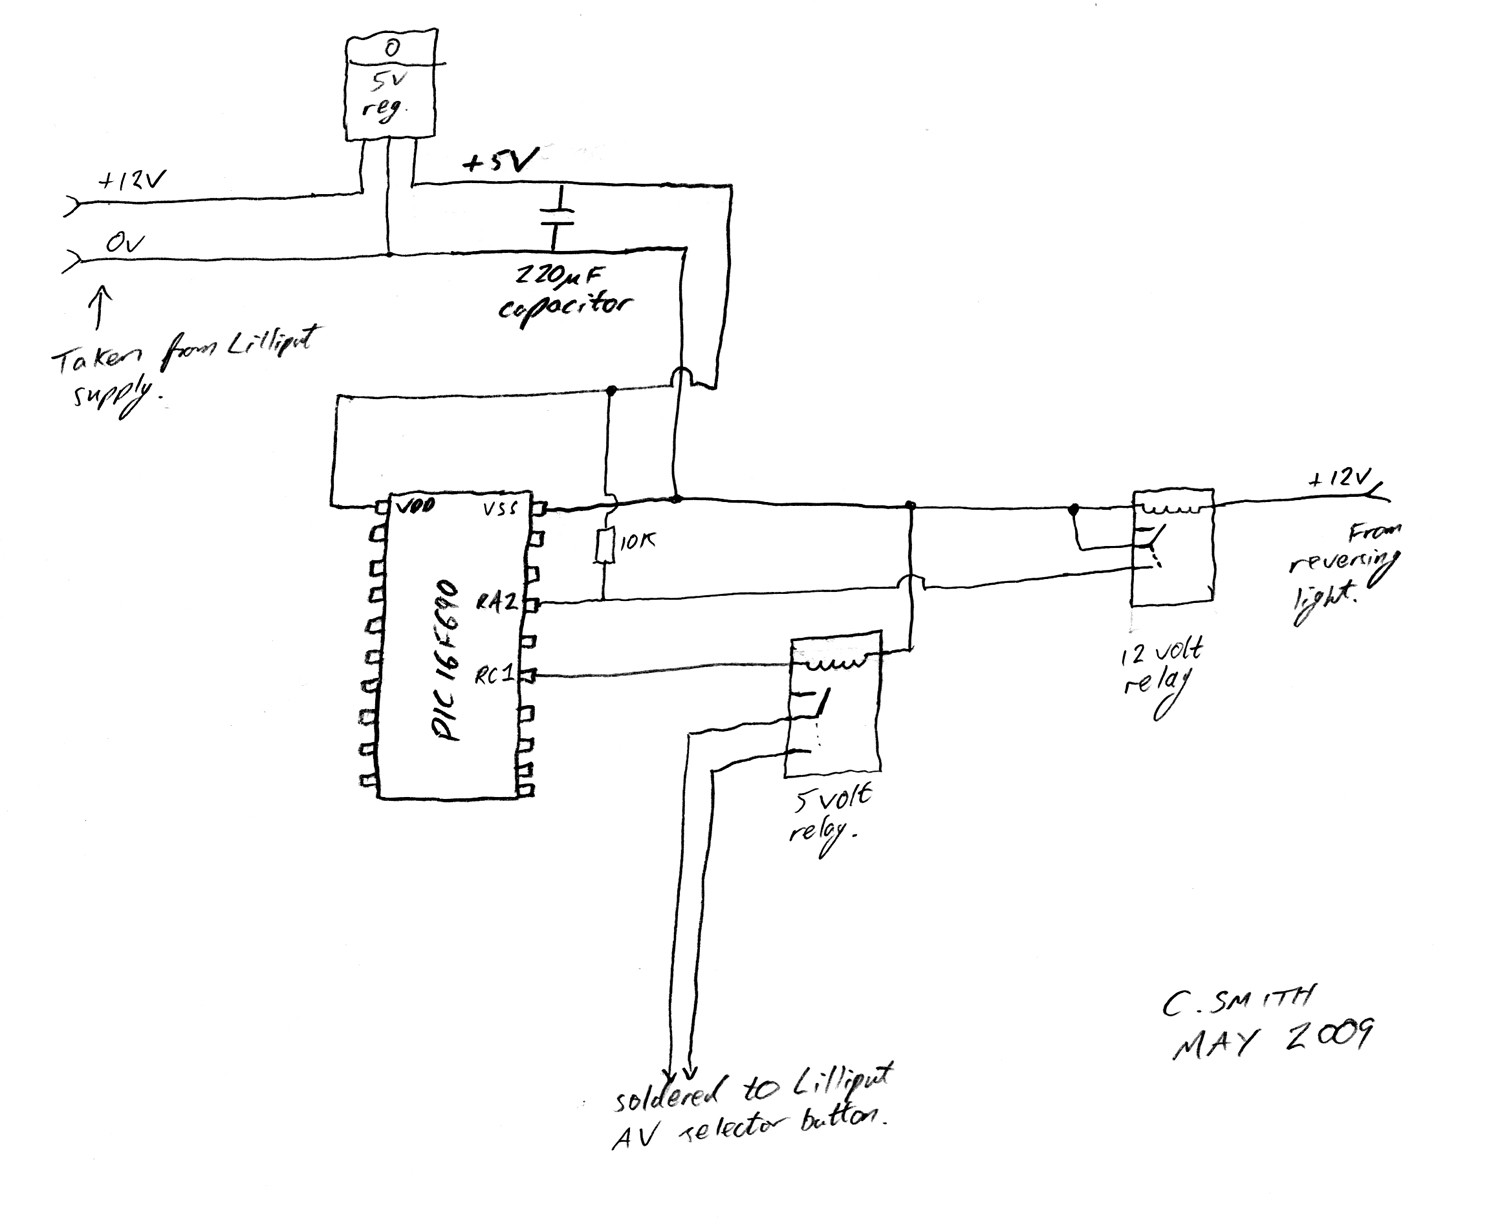 reversing camera wiring diagram viessmann boiler diagrams gt circuits lilliput auto video switching for